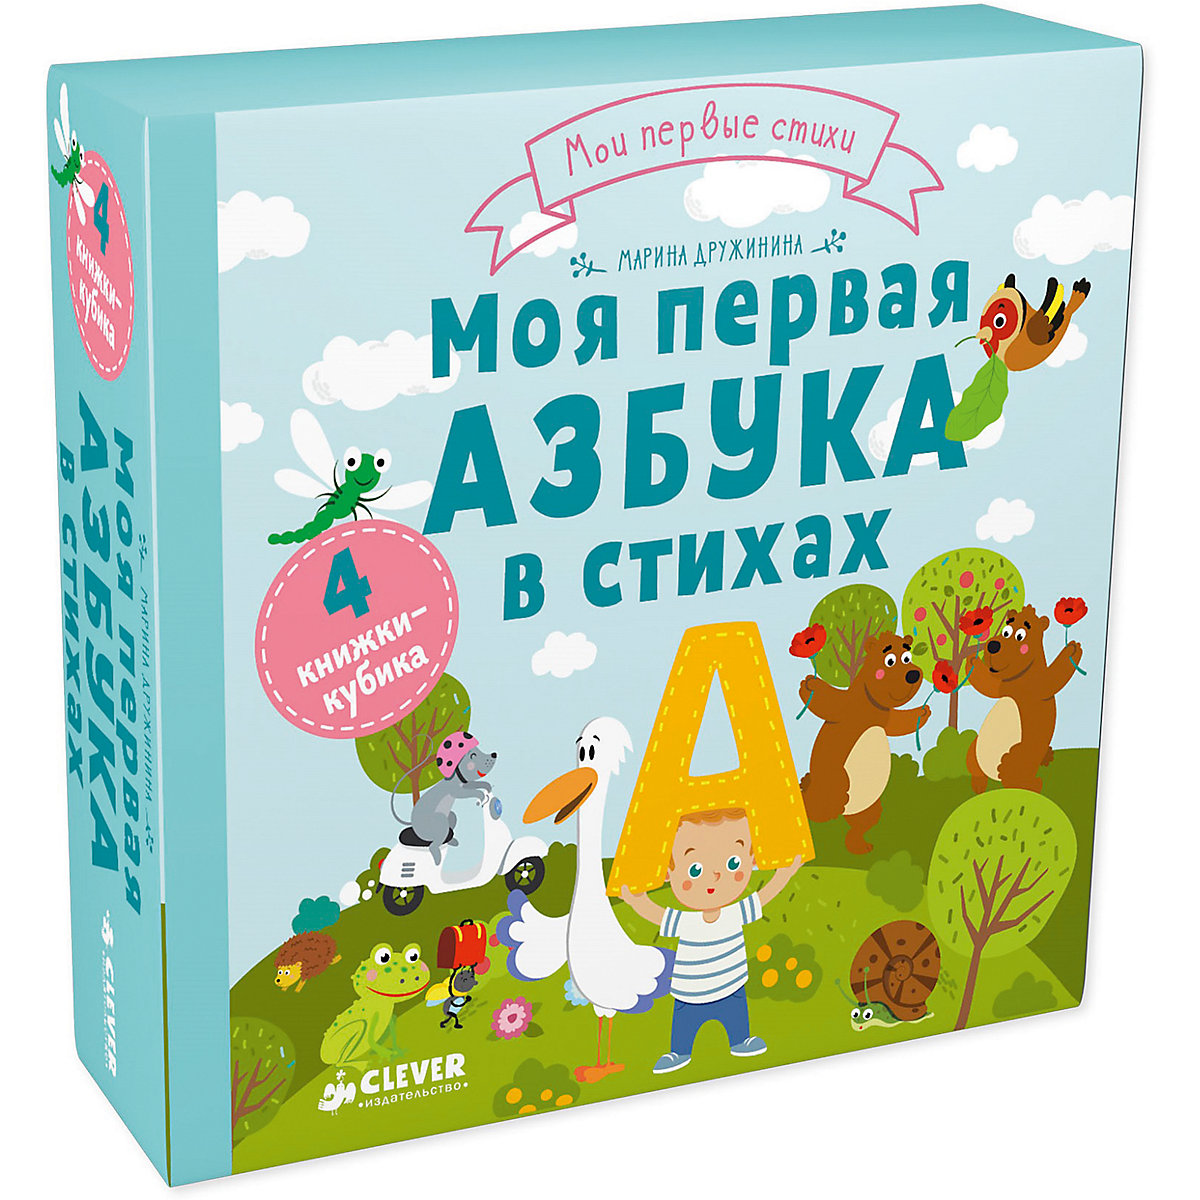 Books CLEVER 8890287 Children Education Encyclopedia Alphabet Dictionary Book For Baby MTpromo